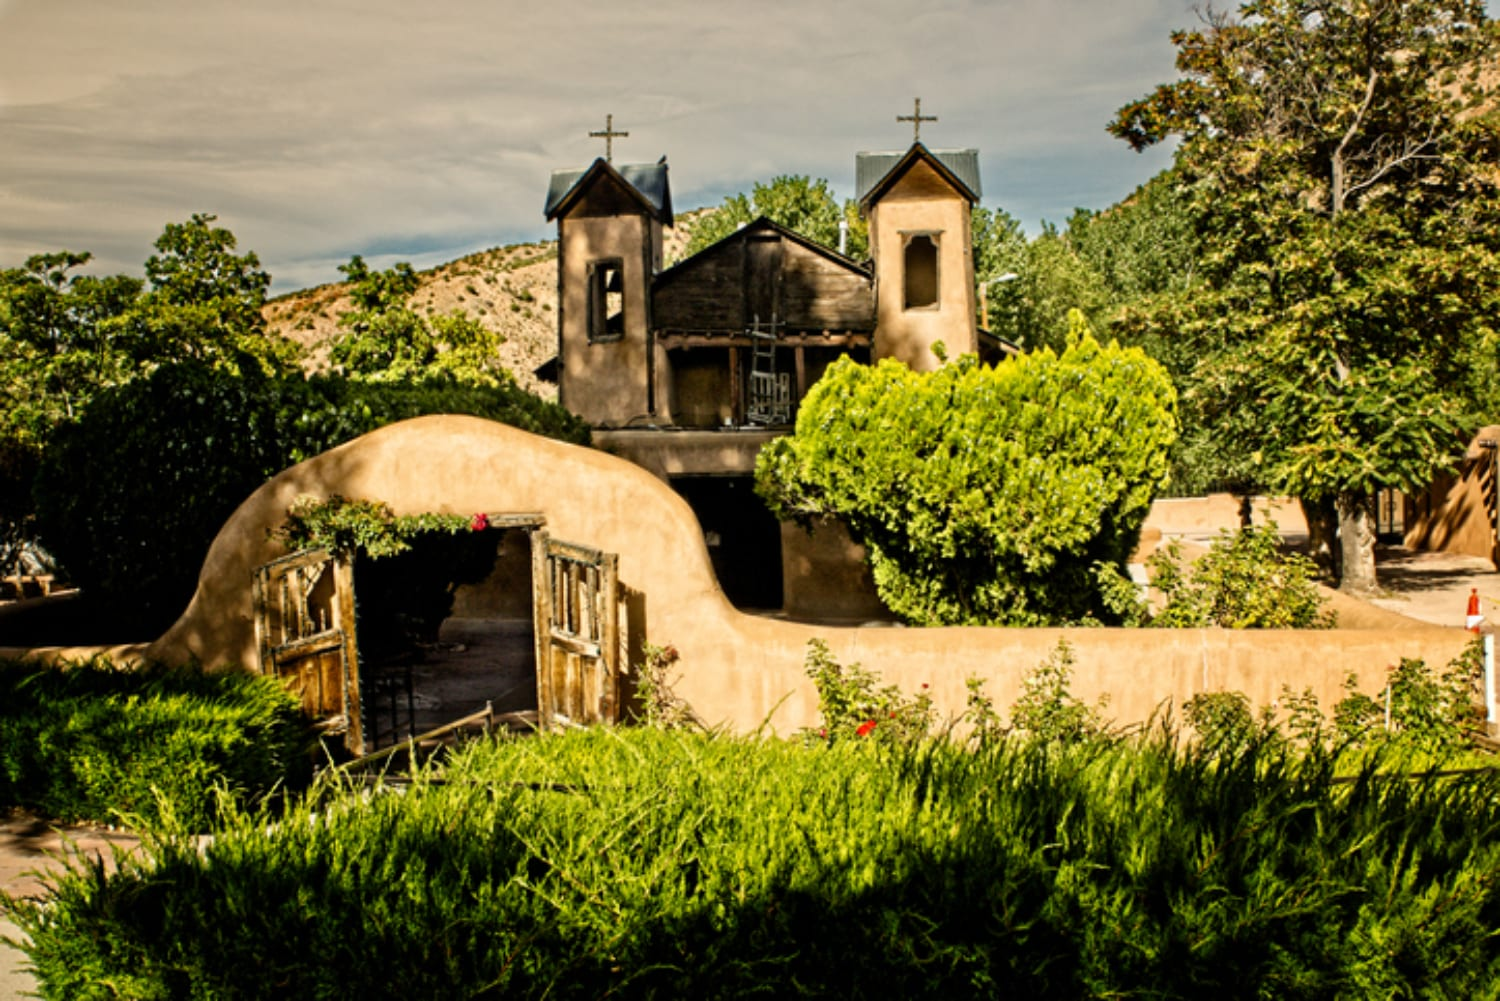 The El Santuario de Chimayo in Chimayo, NM, One of the Best Small Towns Near Santa Fe